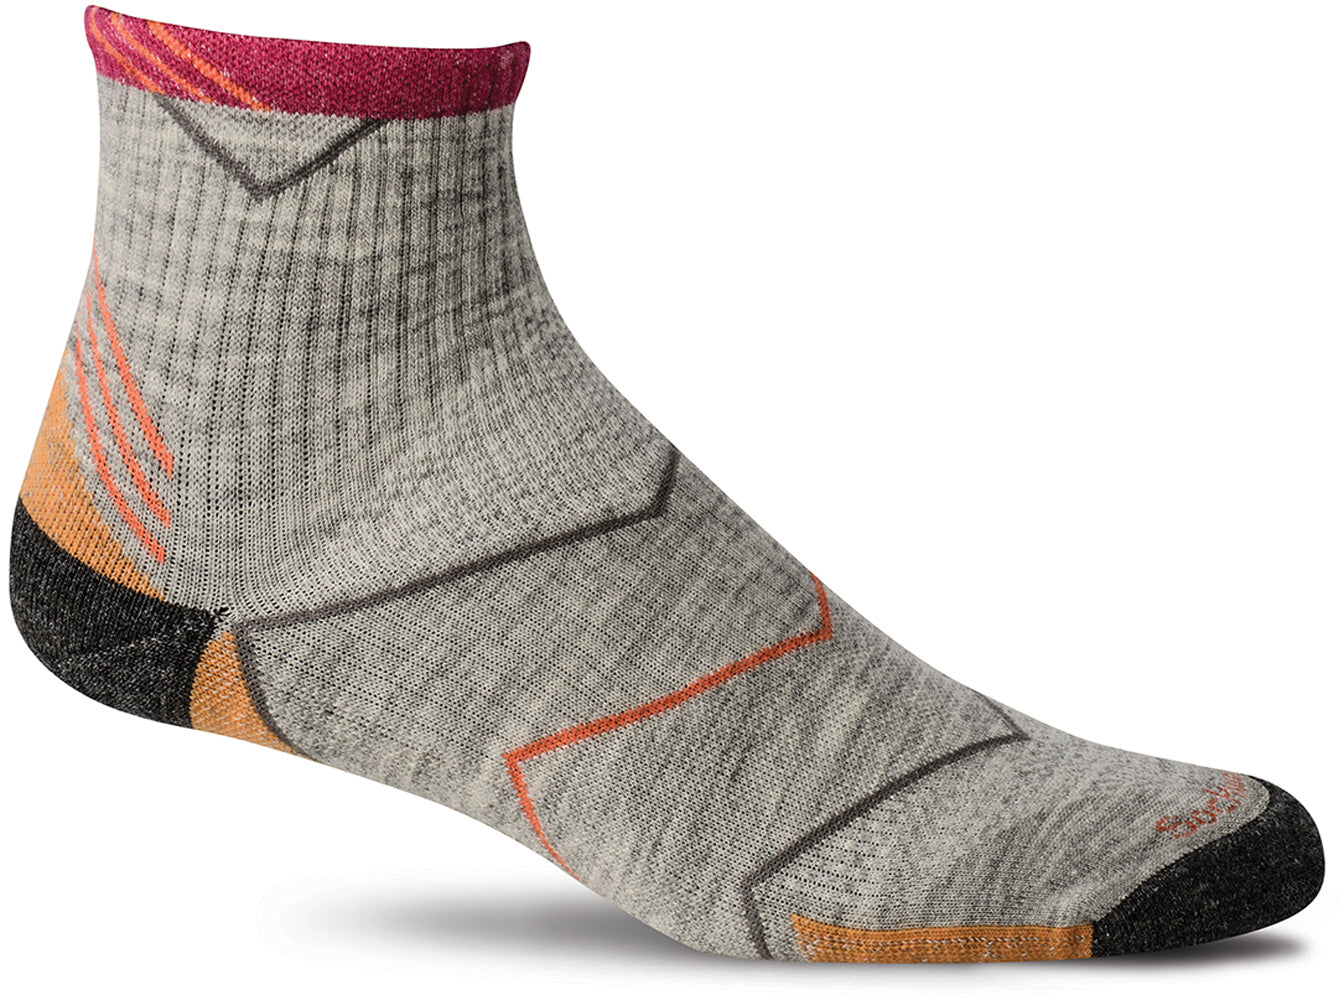 Sockwell Women's Incline Quarter Sock in Grey color from the side